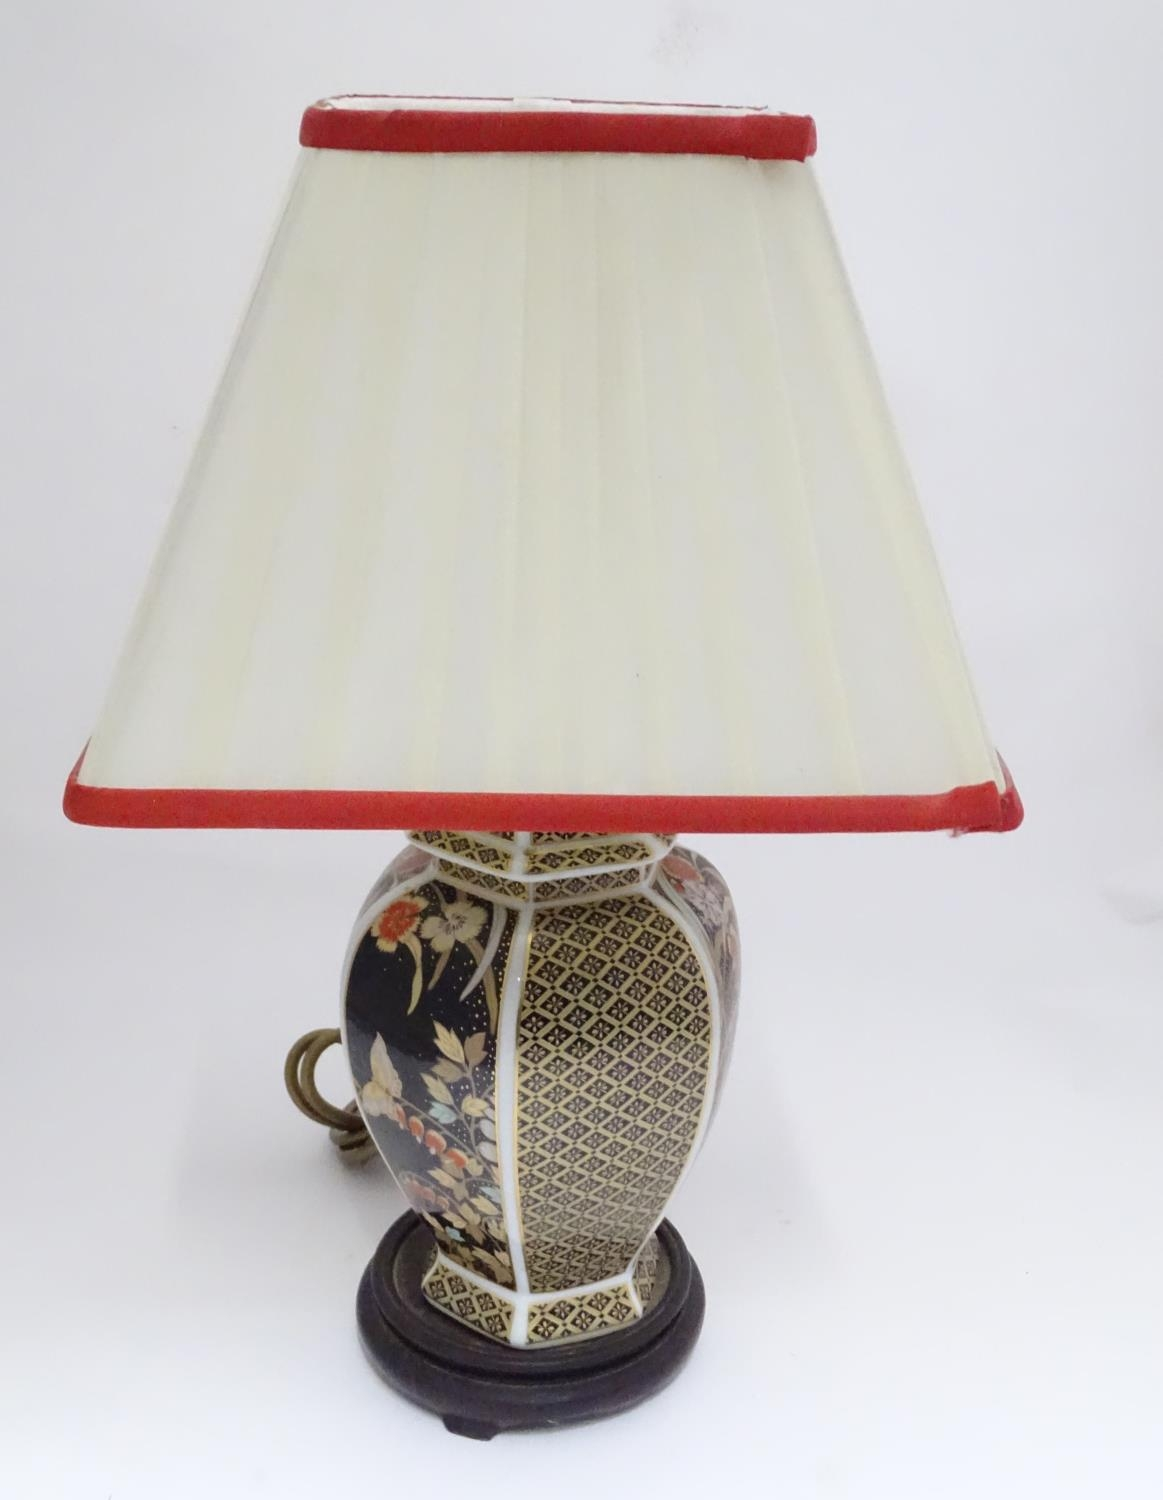 An Oriental style lamp with shade Please Note - we do not make reference to the condition of lots - Image 3 of 6